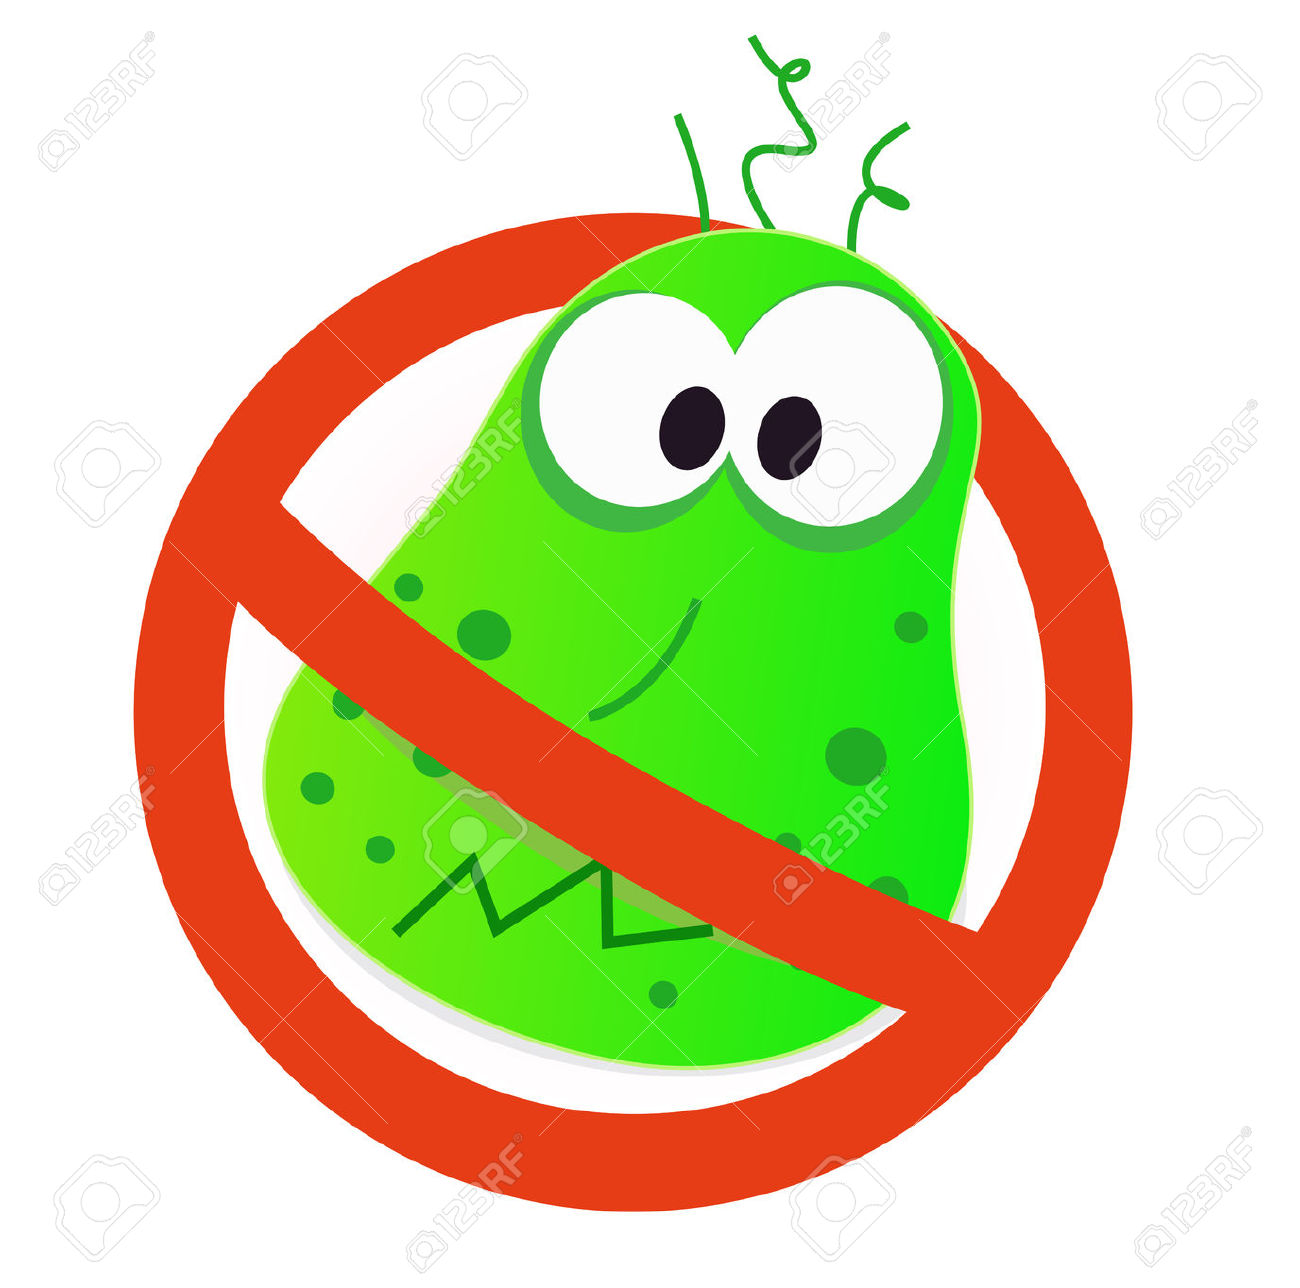 Germ clipart #13, Download drawings